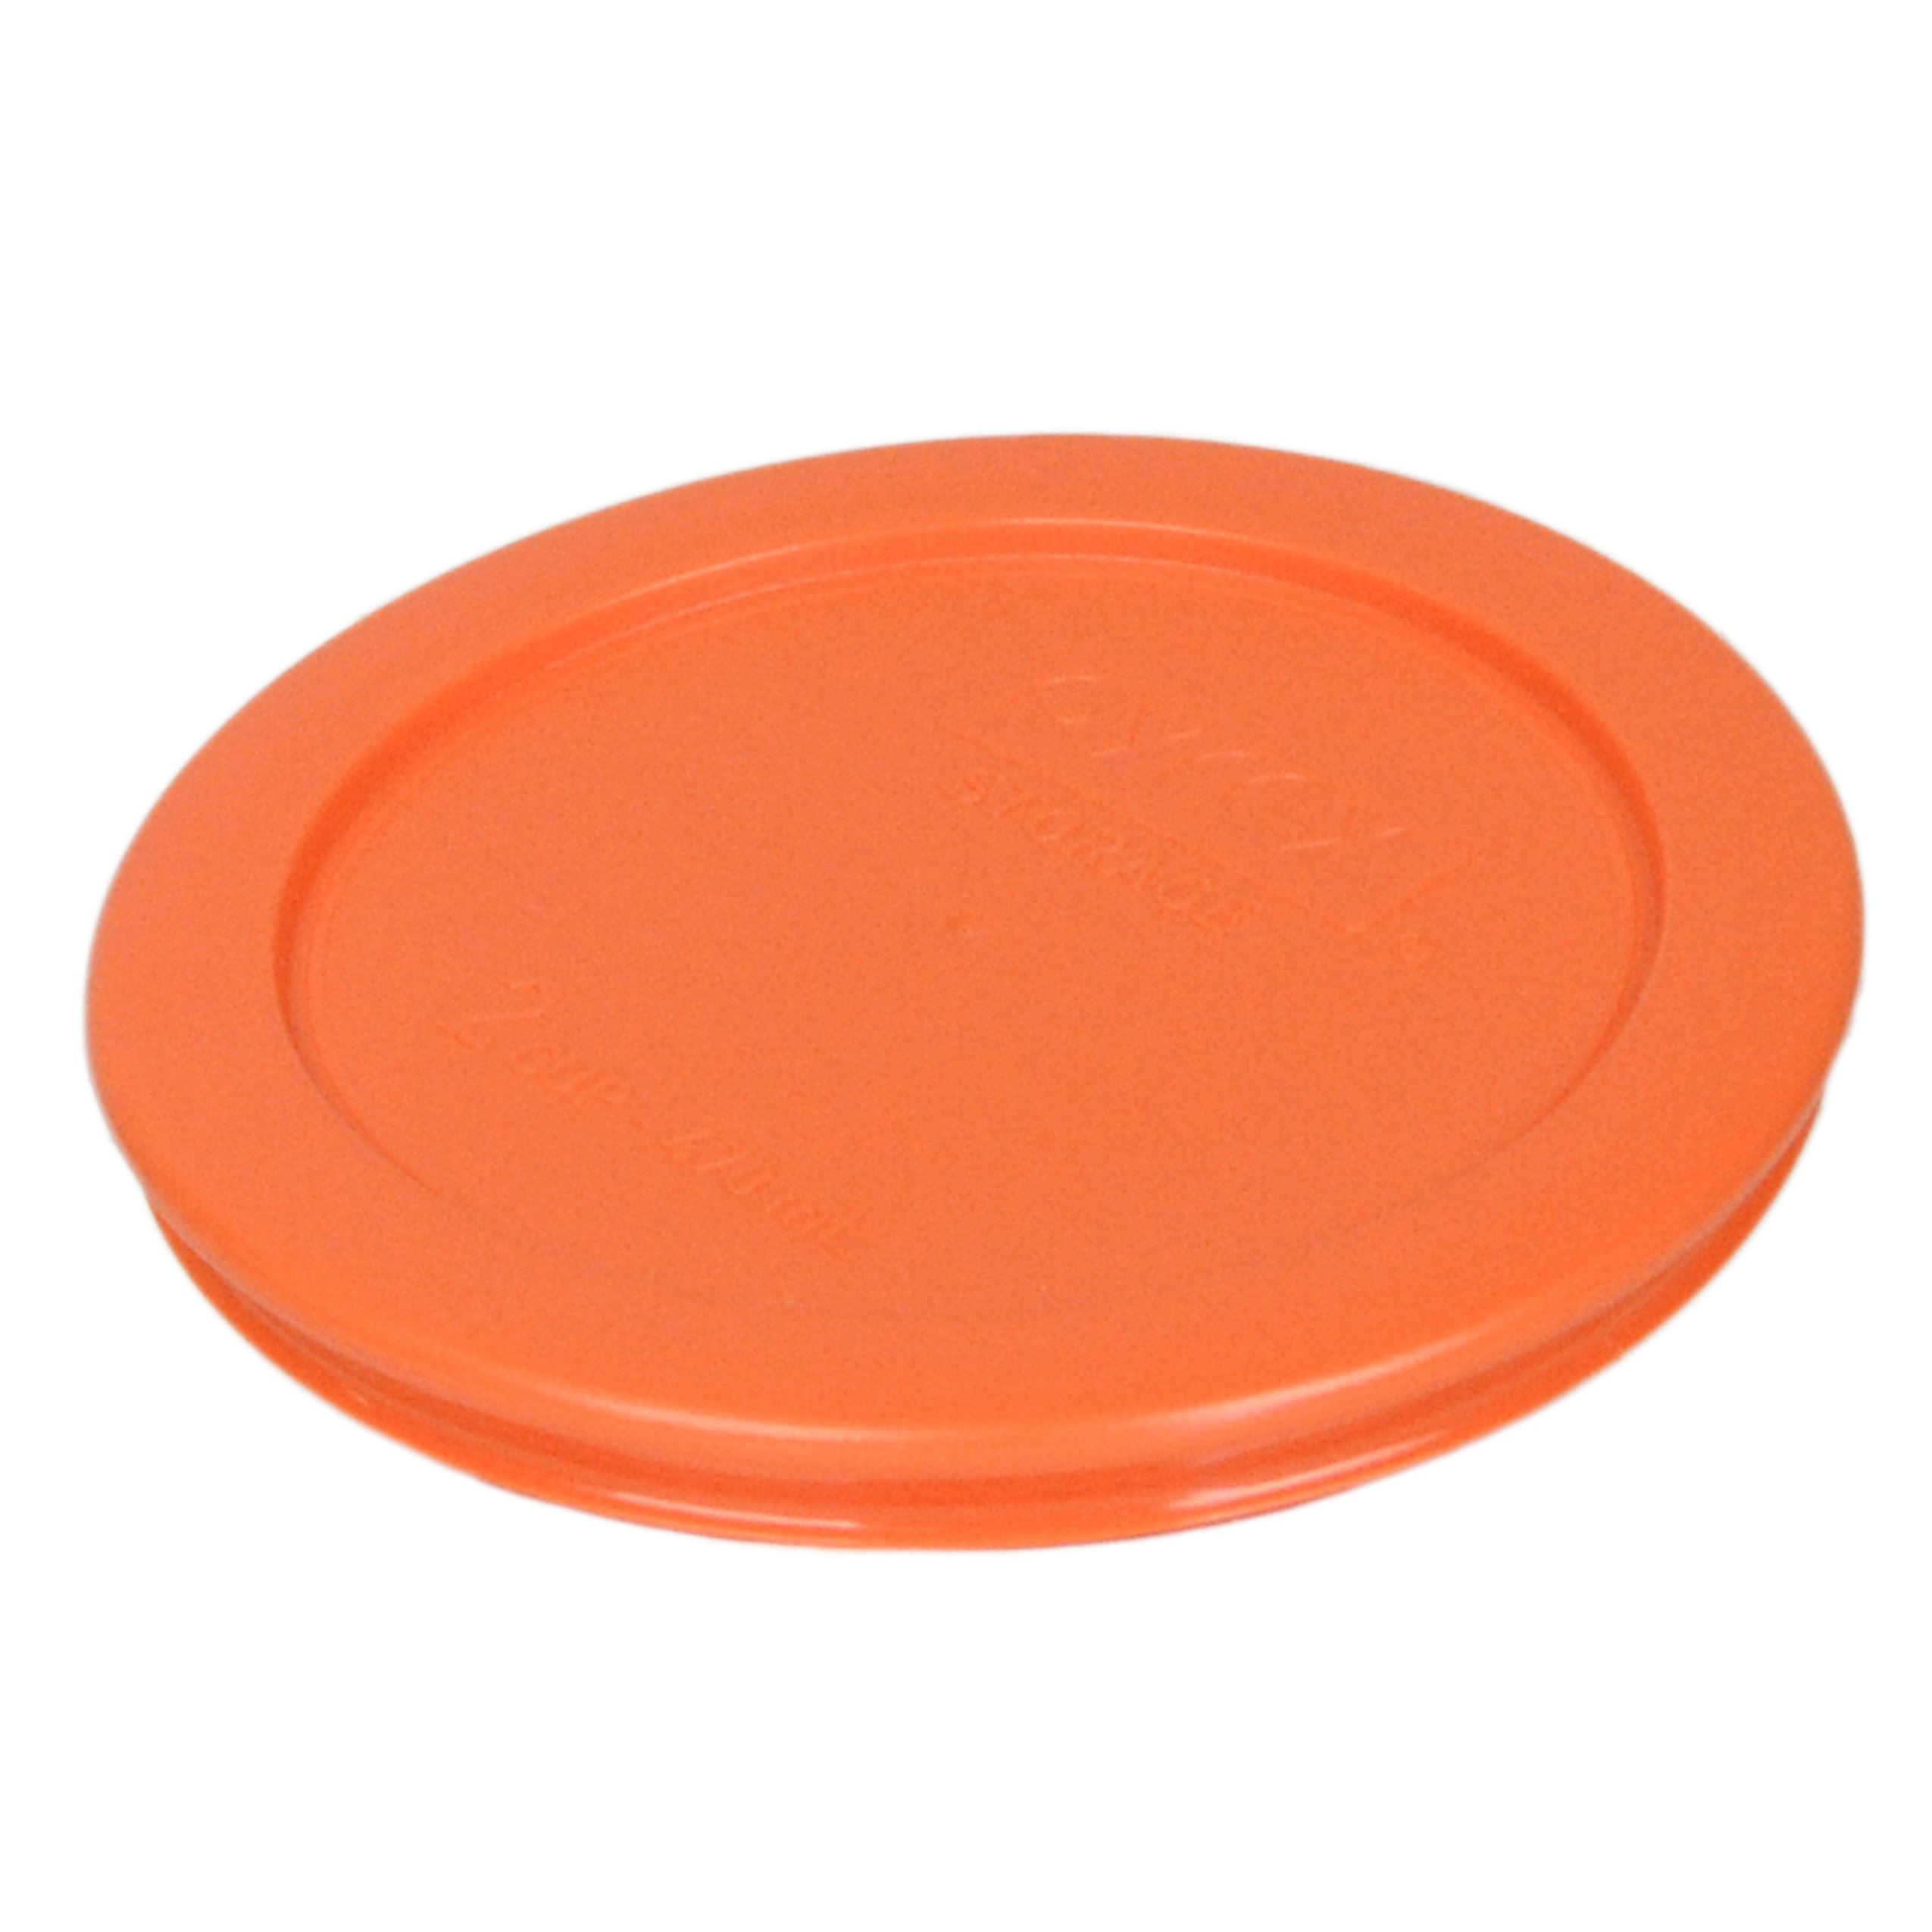 Pyrex 7200-PC Round 2 Cup Storage Lid for Glass Bowls (6, Orange) by Pyrex (Image #3)